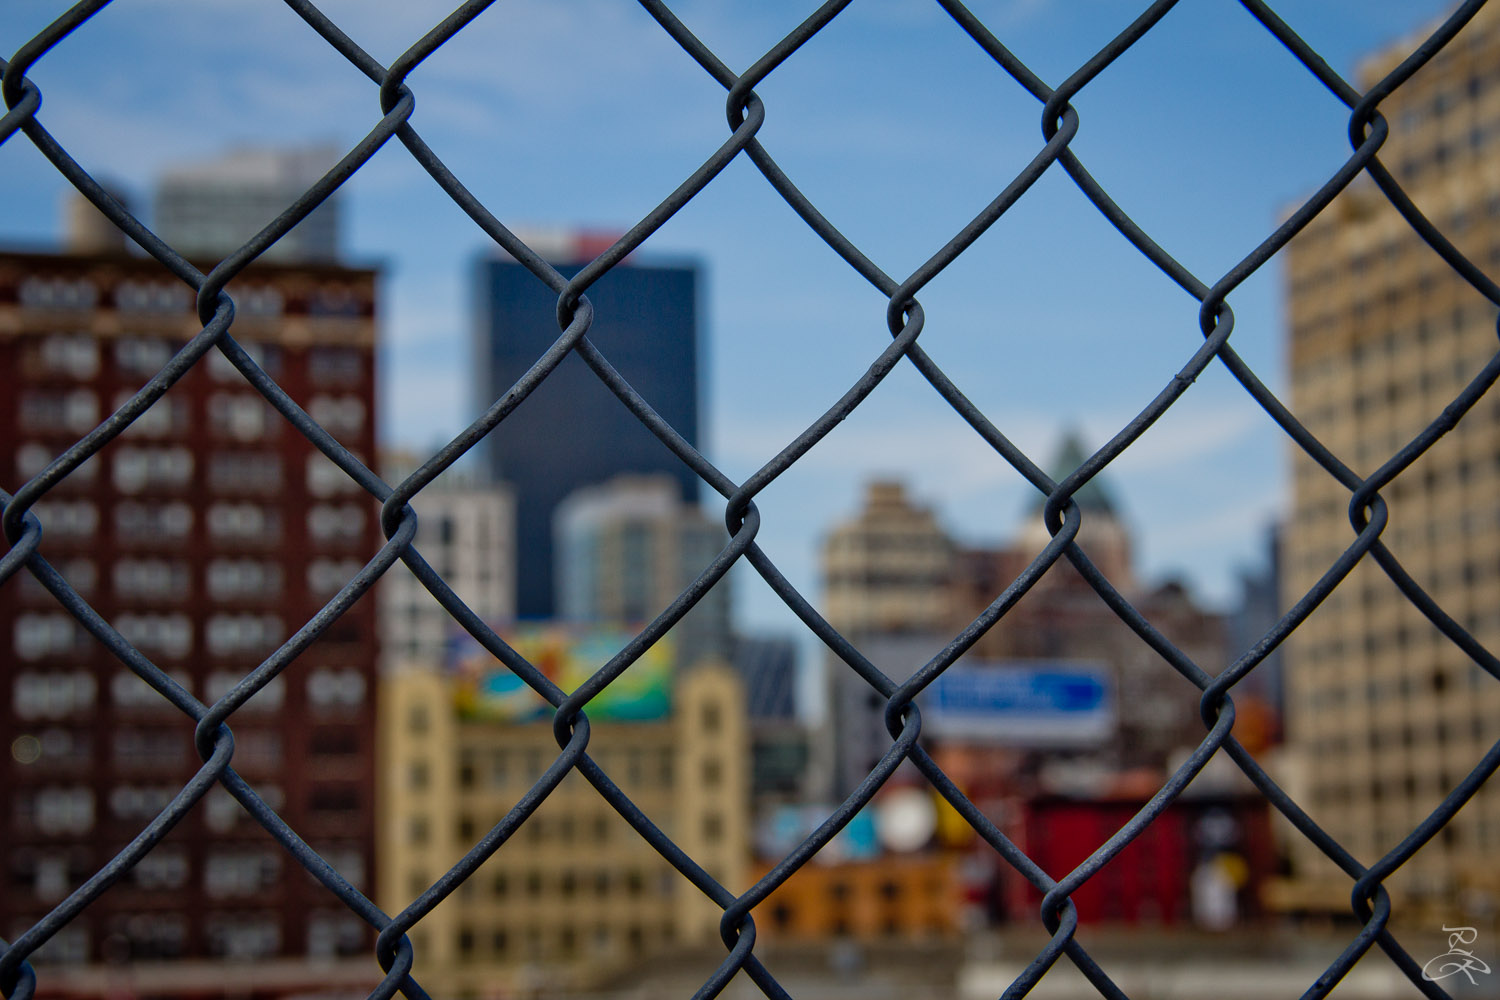 A caged view from the highline. Manhattan, NY.